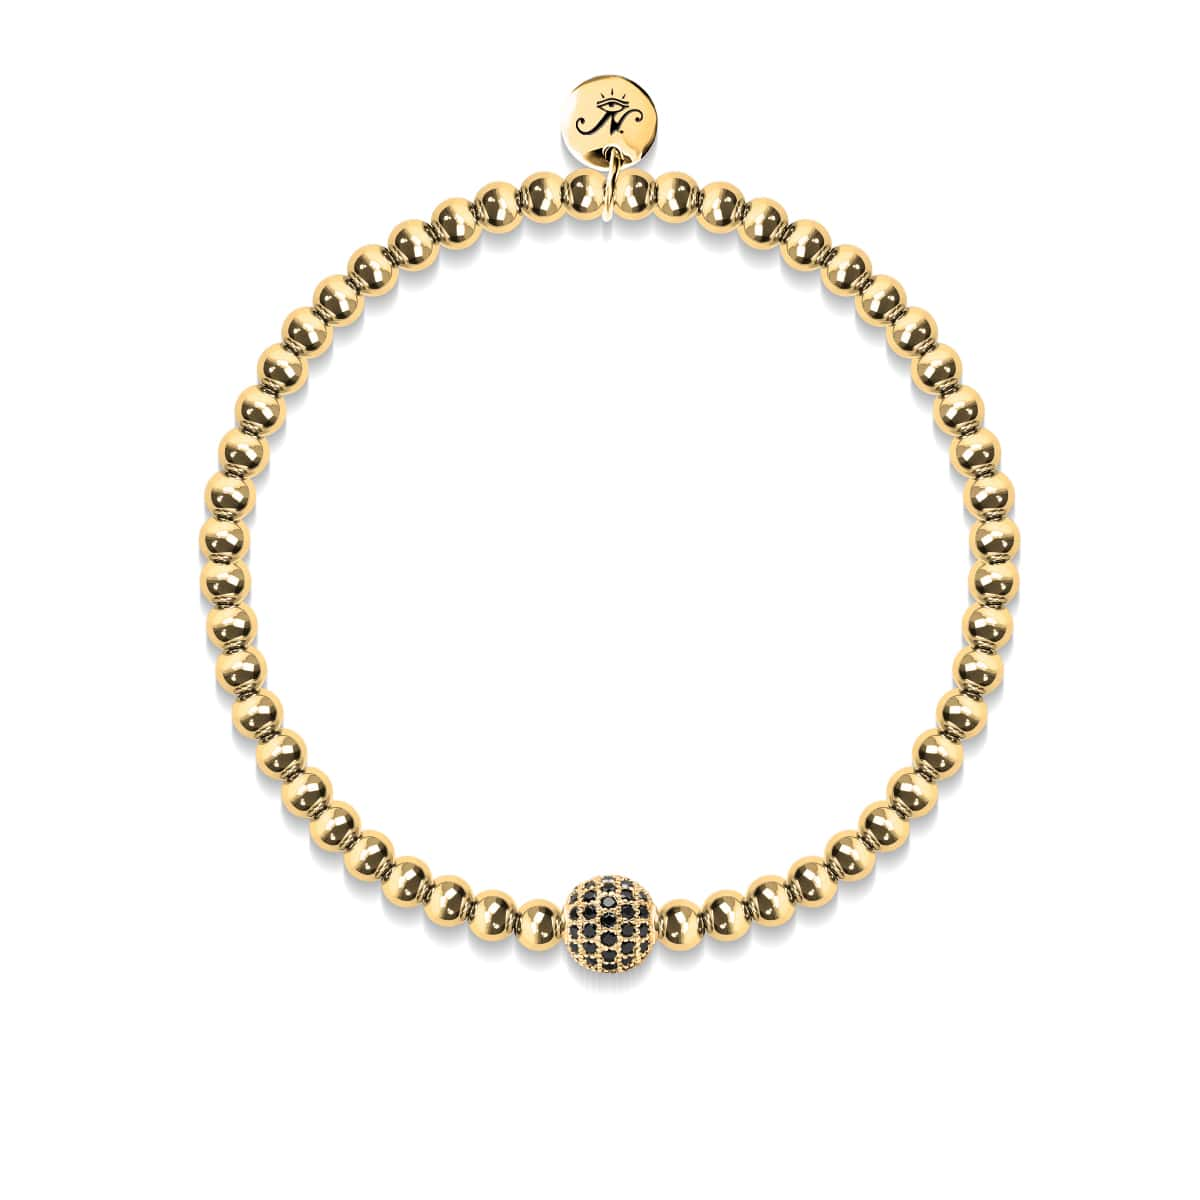 Charismatic | 18k Gold | Black Cubic Zirconia Crystals | Expression Bracelet